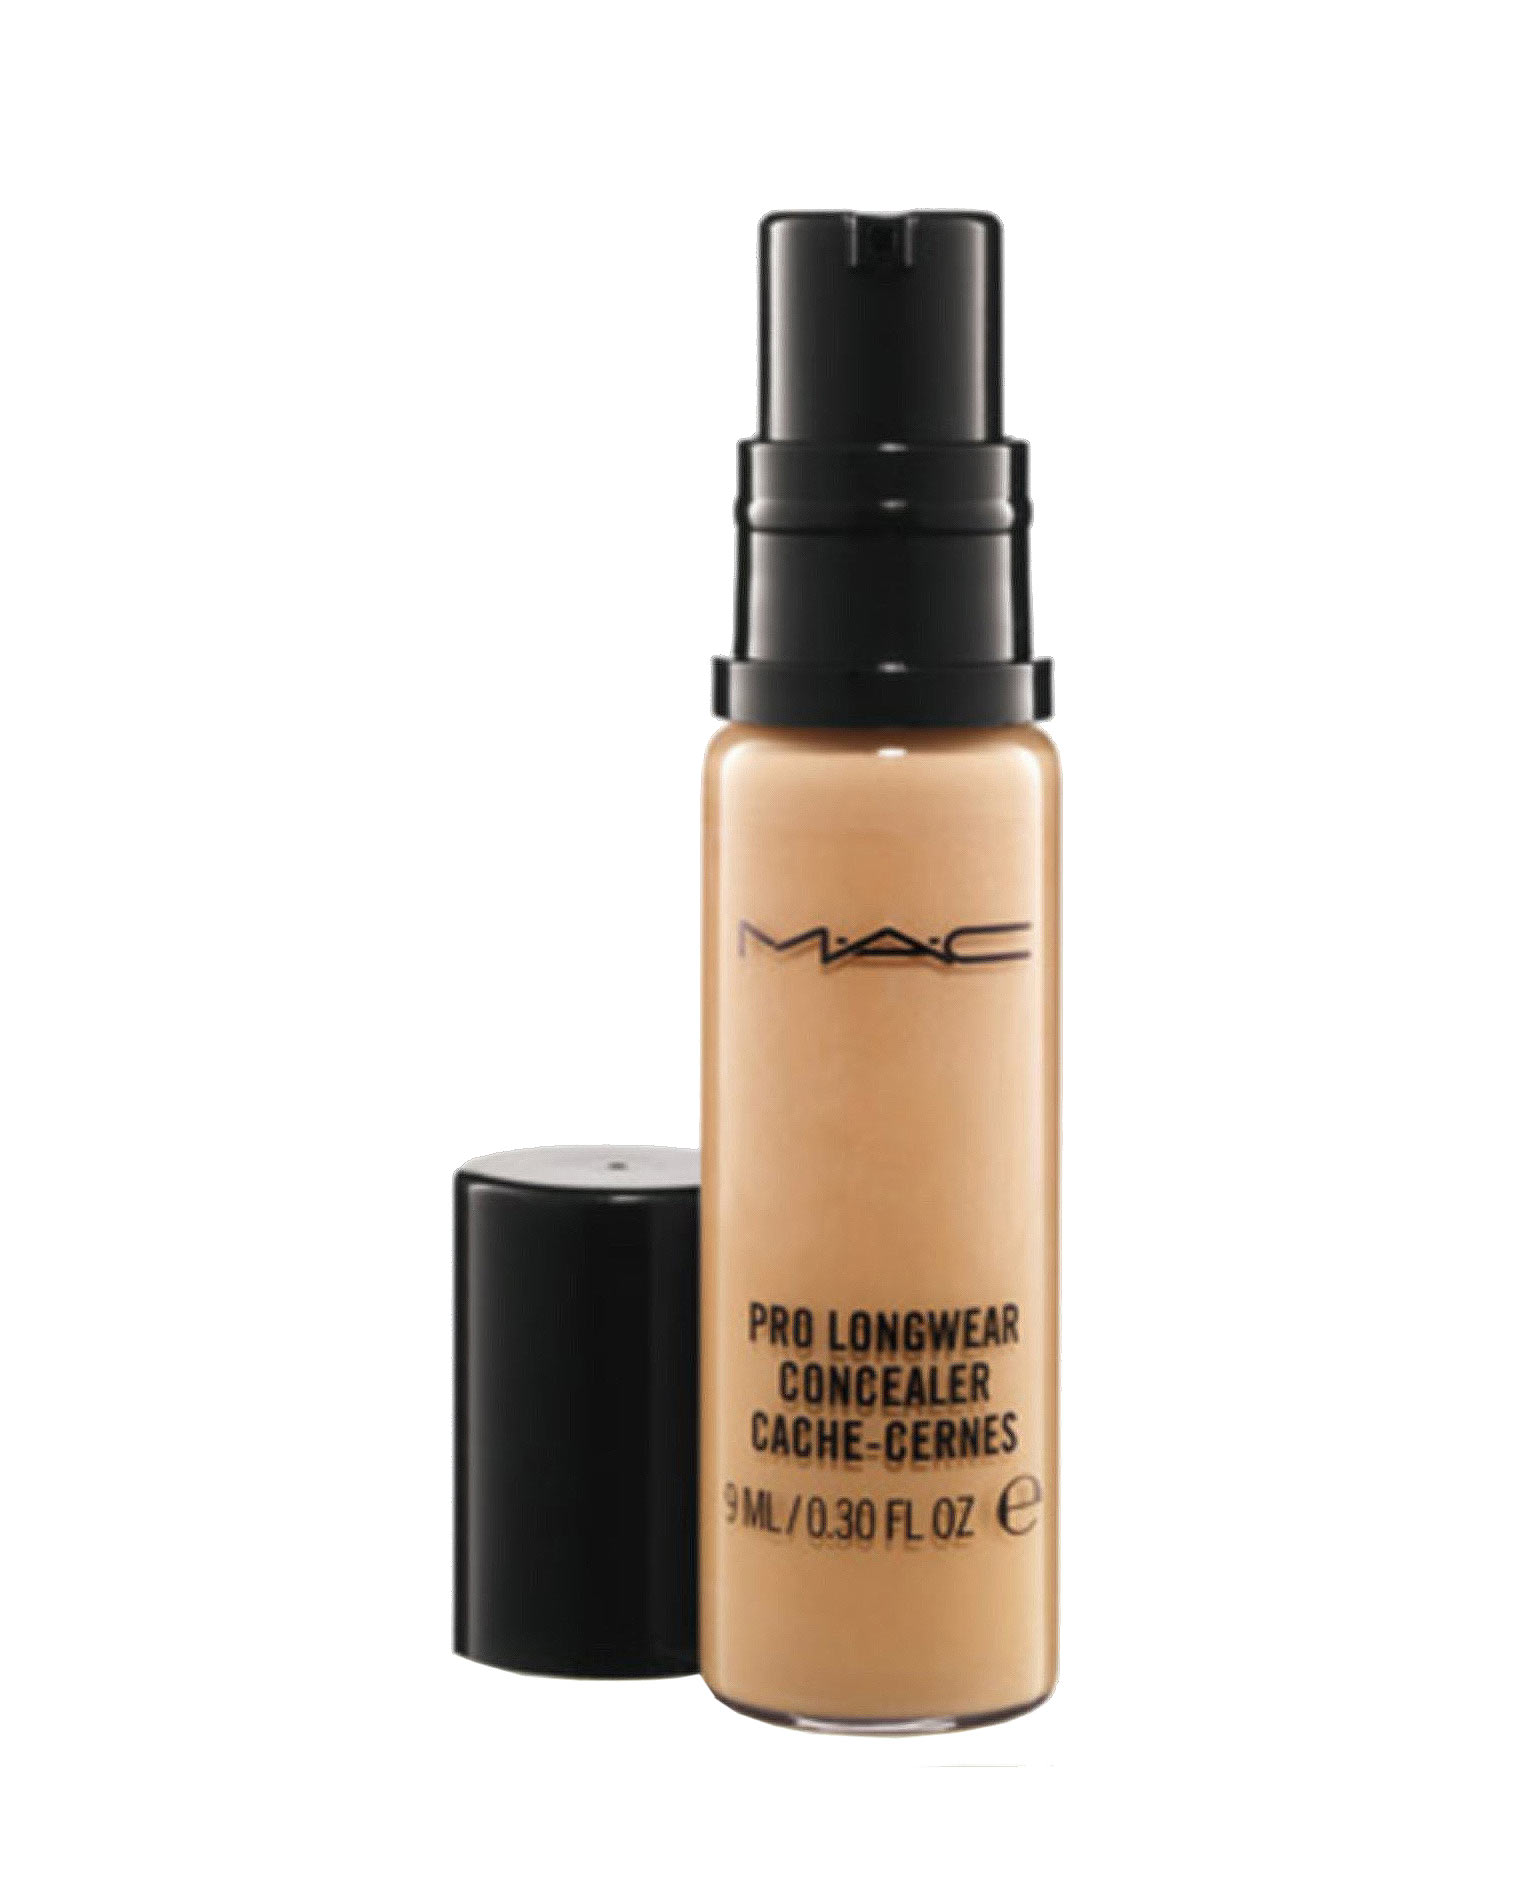 big-day-beauty-awards-mac-cosmetics-pro-longwear-concealer-0216.jpg